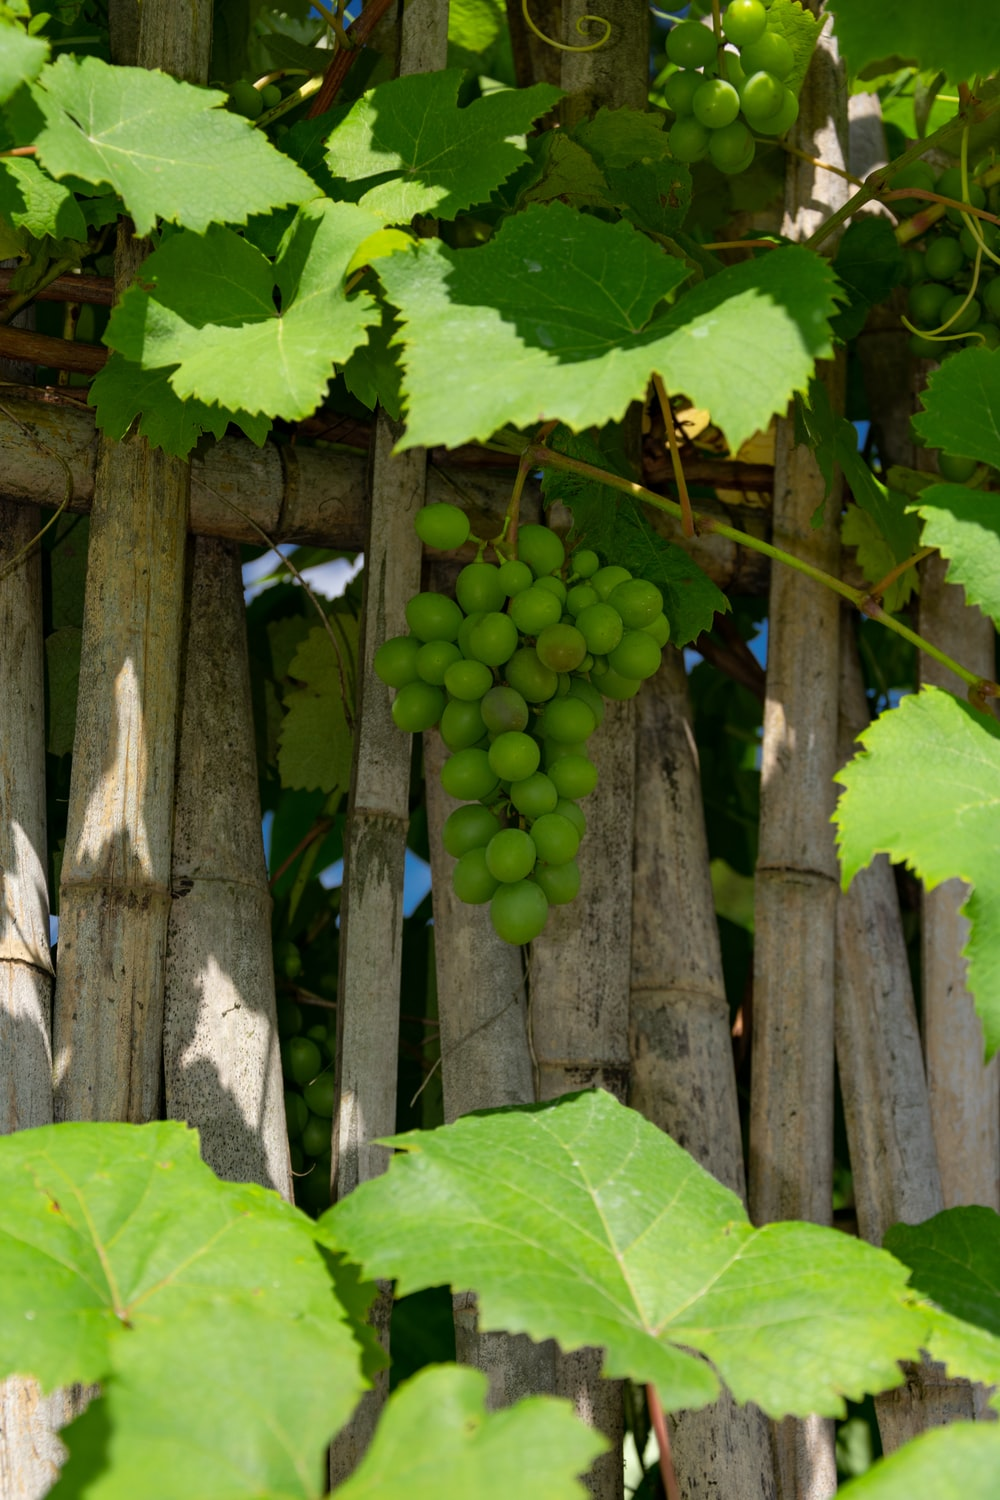 green grapes on brown wooden fence